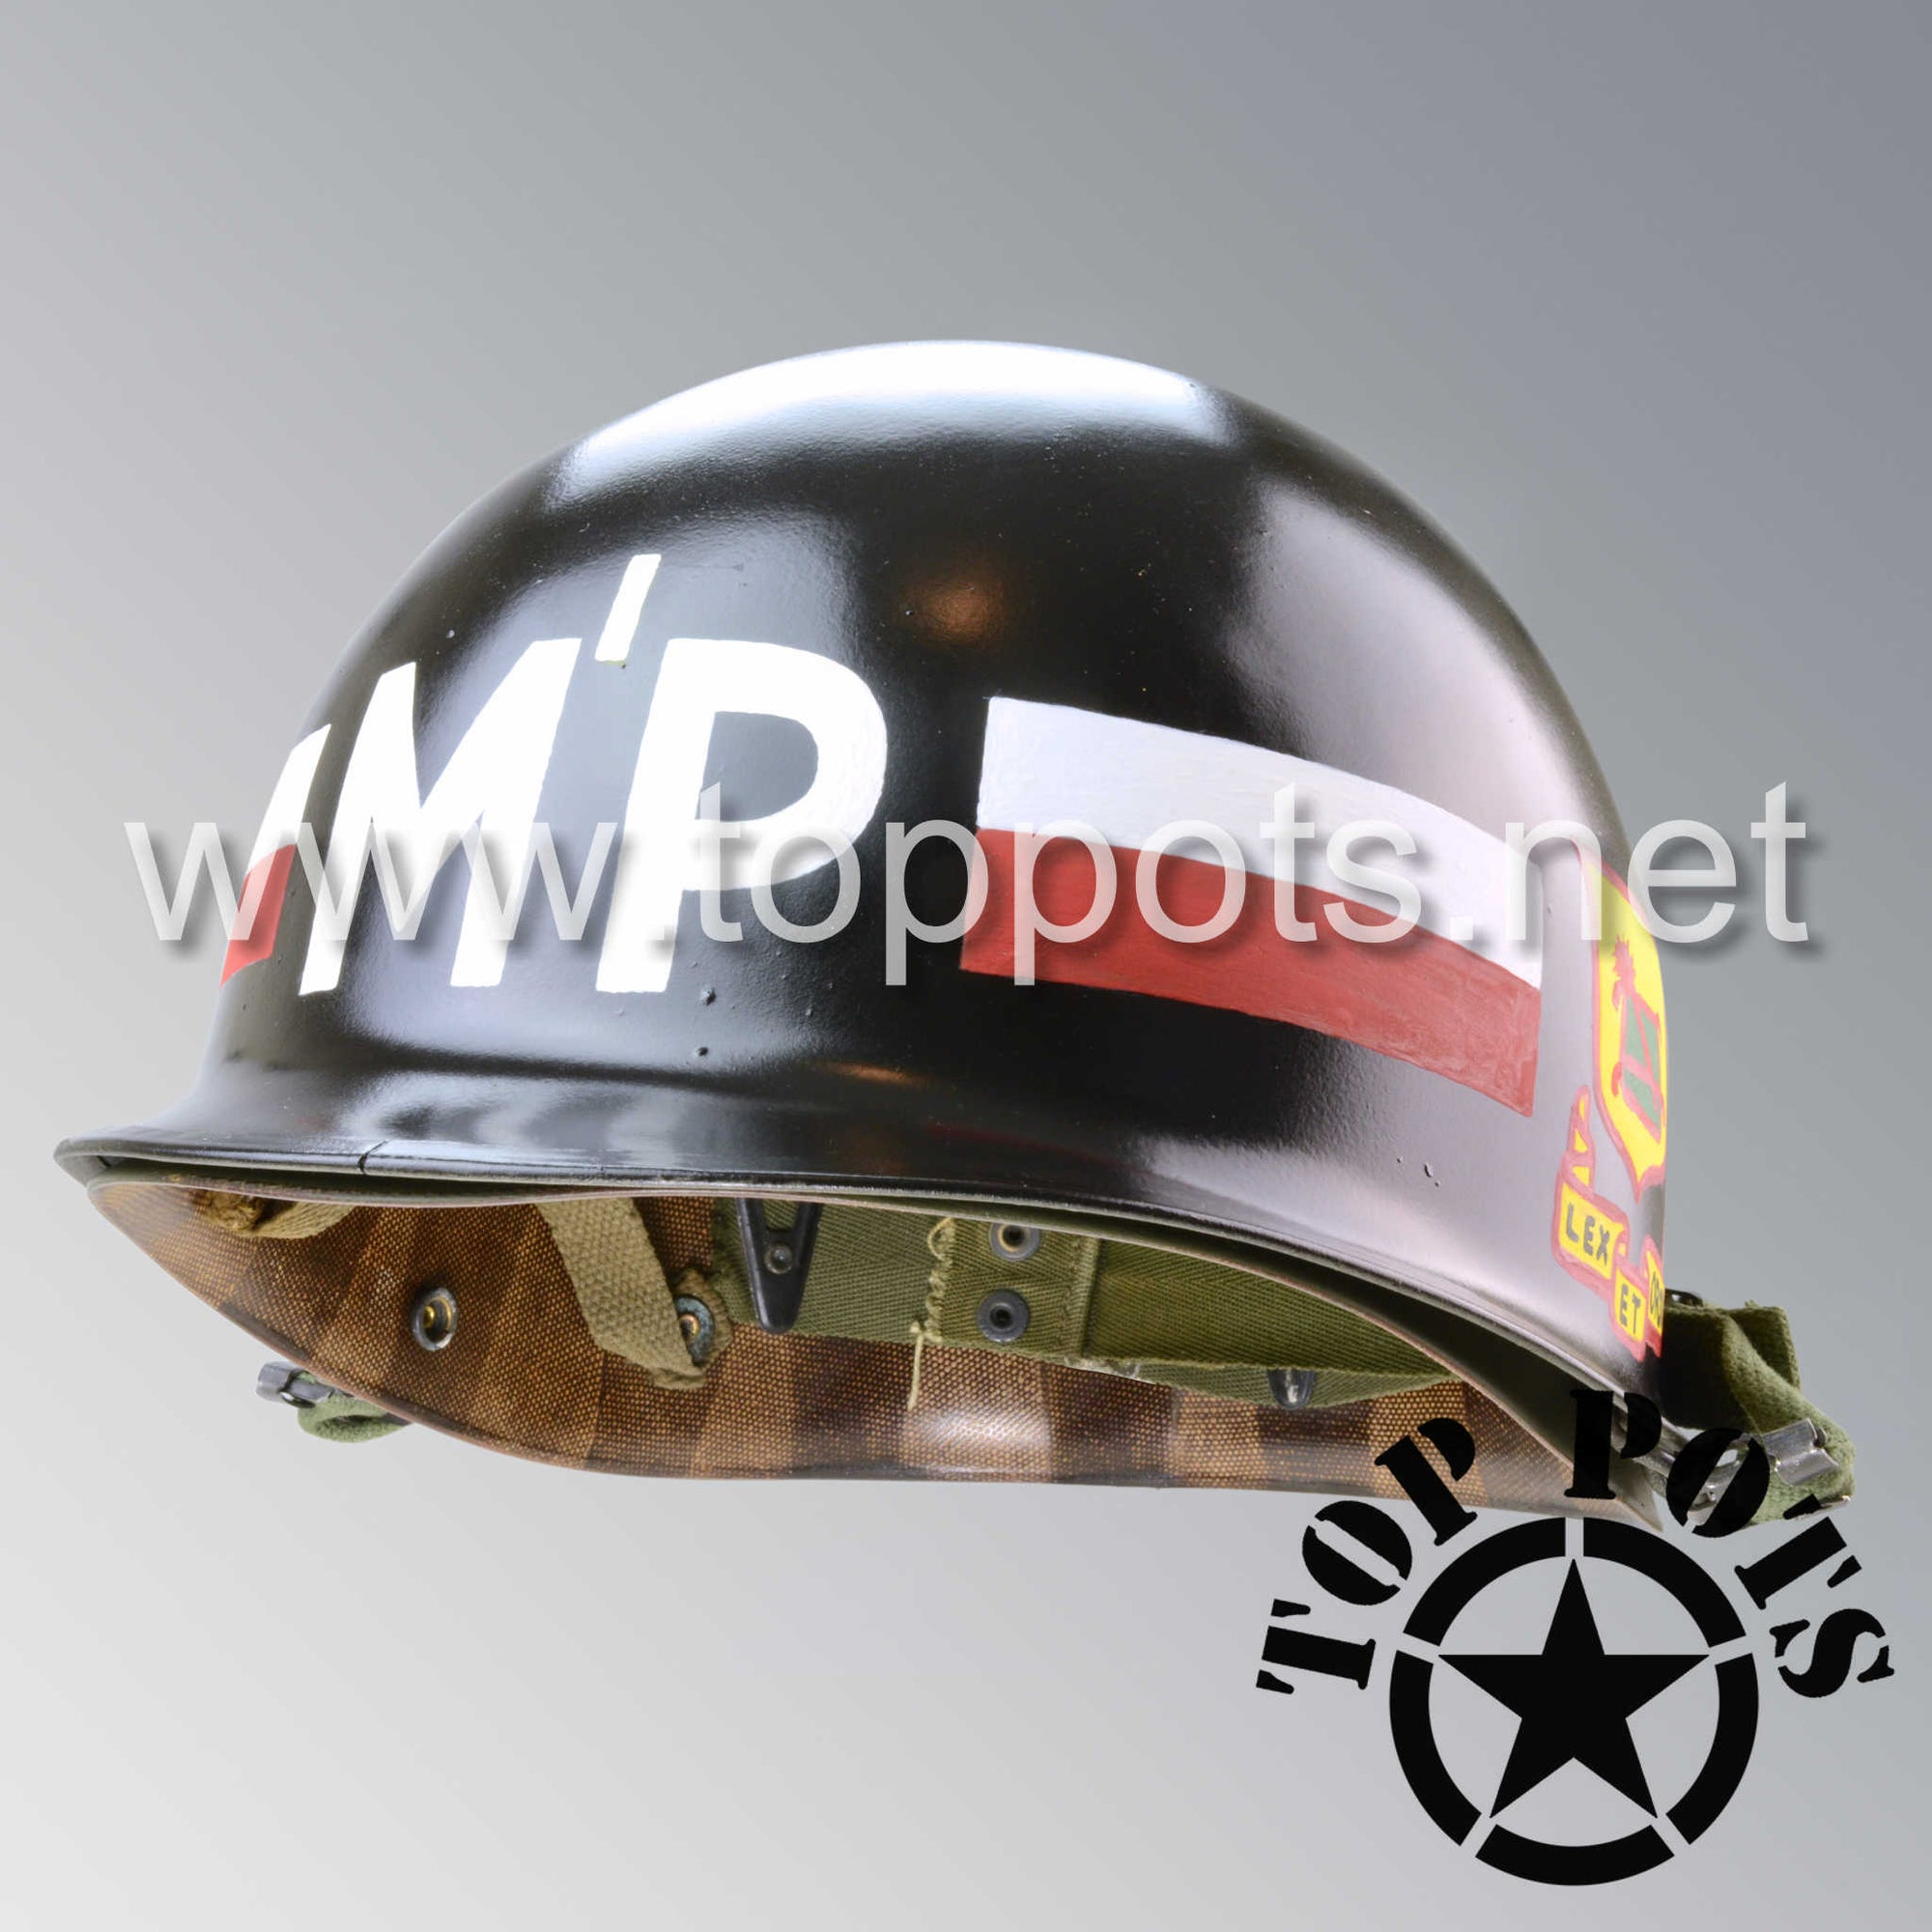 Image 1 of Vietnam War US Army Original M1 Infantry Helmet and Liner with 76th MP Battalion 8th Military Police Brigade Emblem